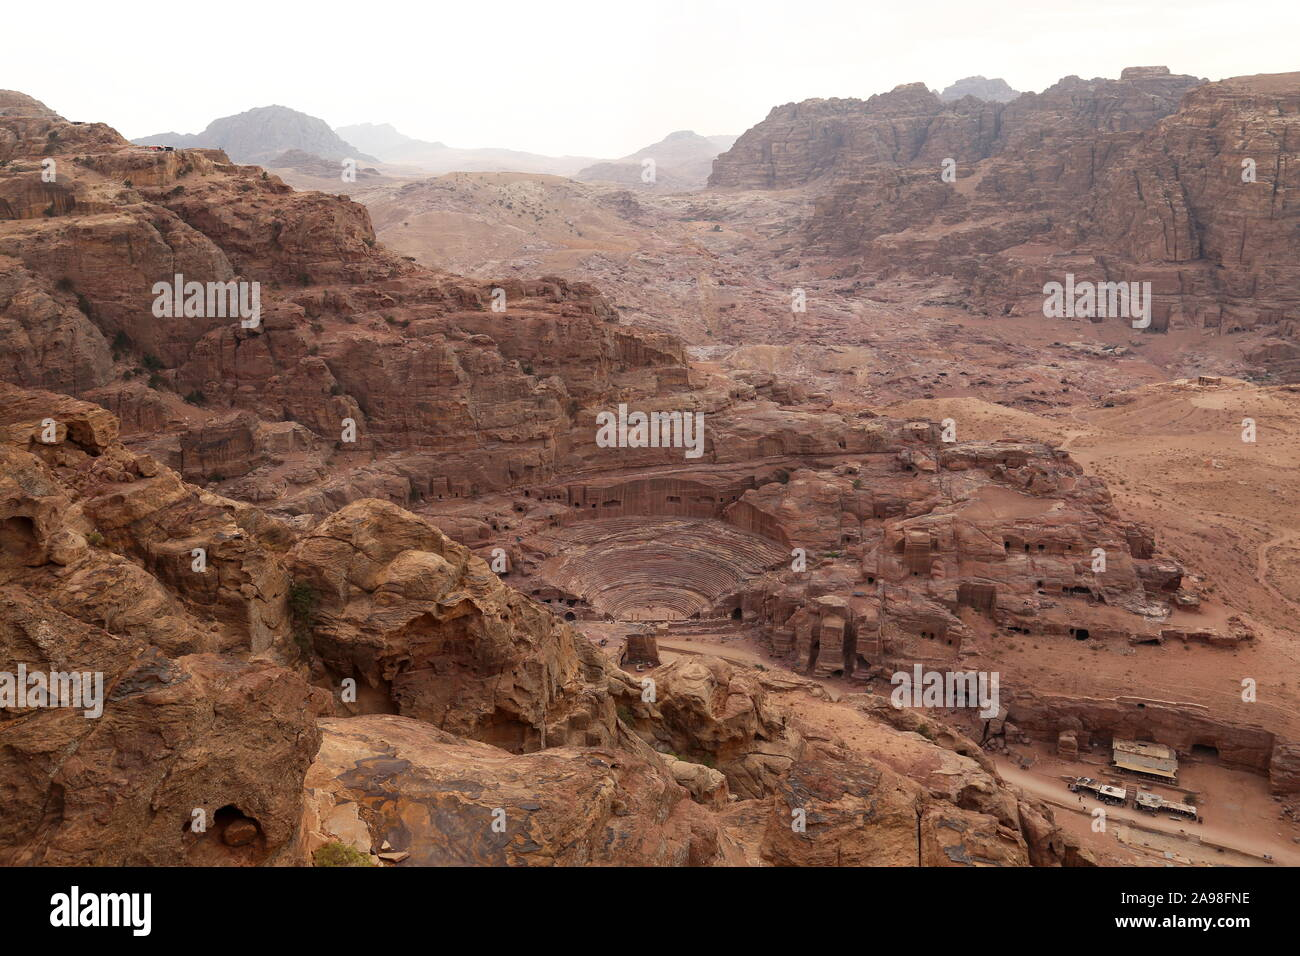 Theatre, seen from the Treasury Viewpoint Trail, Petra, Wadi Musa, Ma'an Governorate, Jordan, Middle East Stock Photo